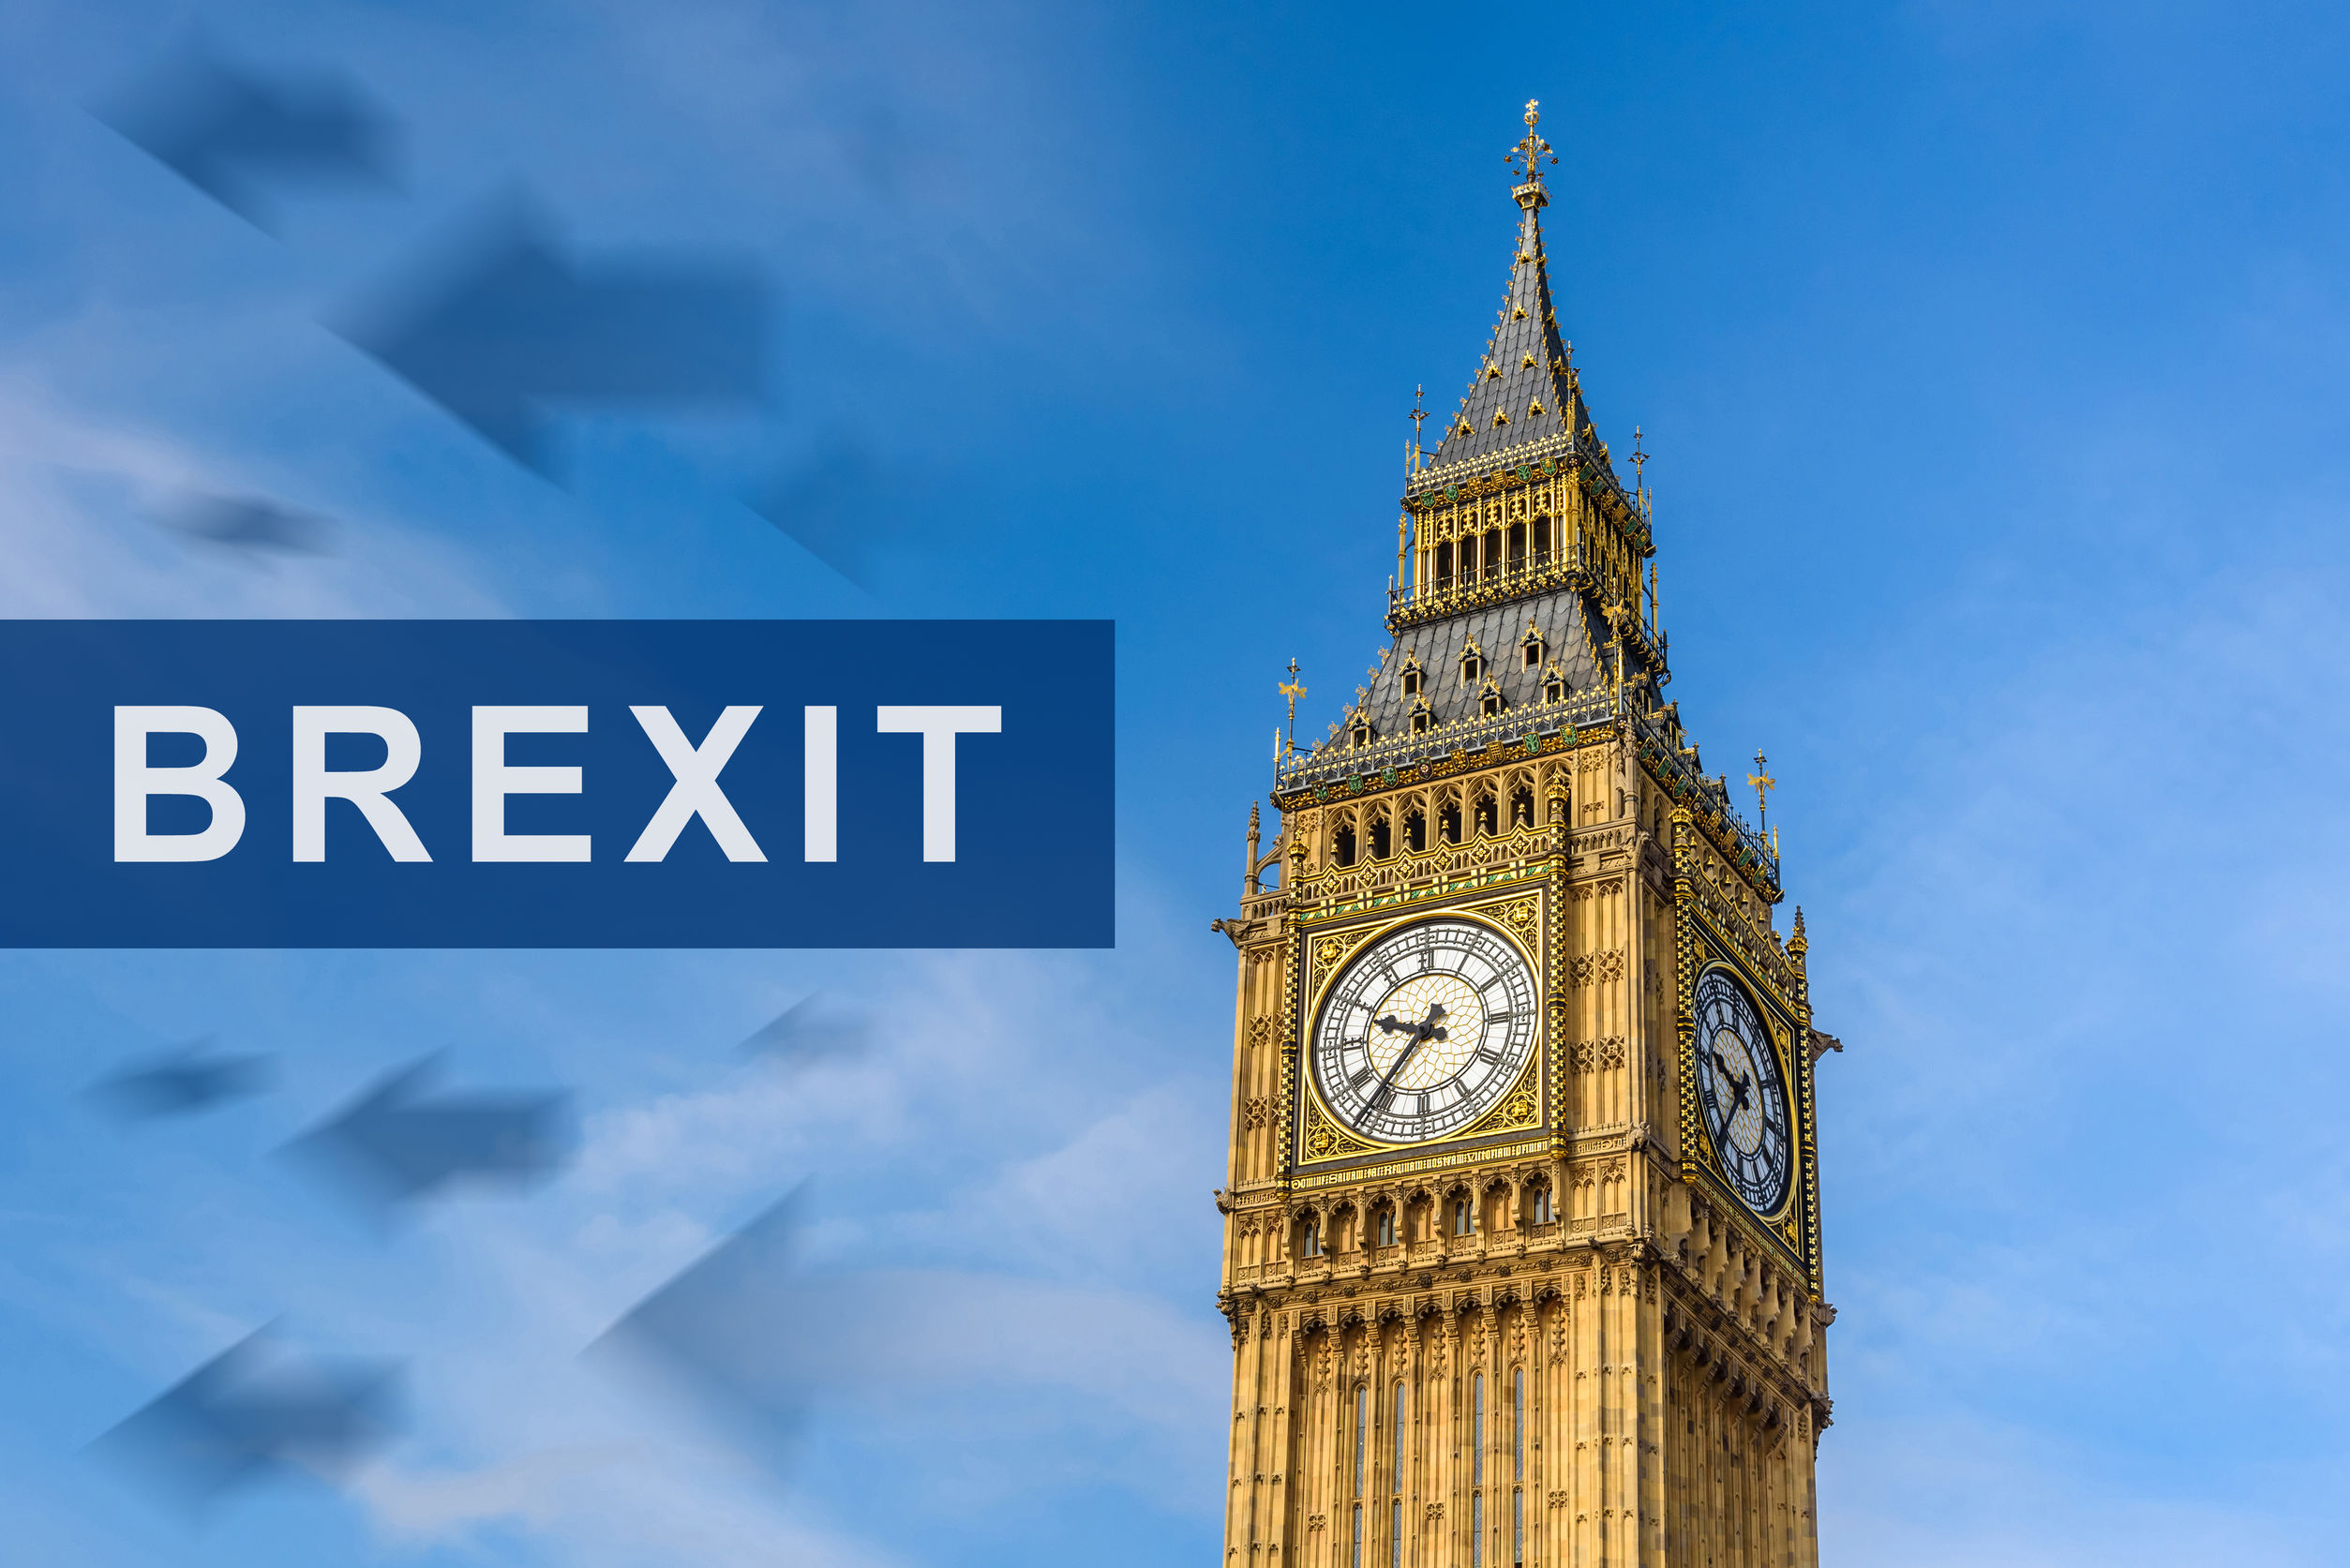 big ben with the word brexit